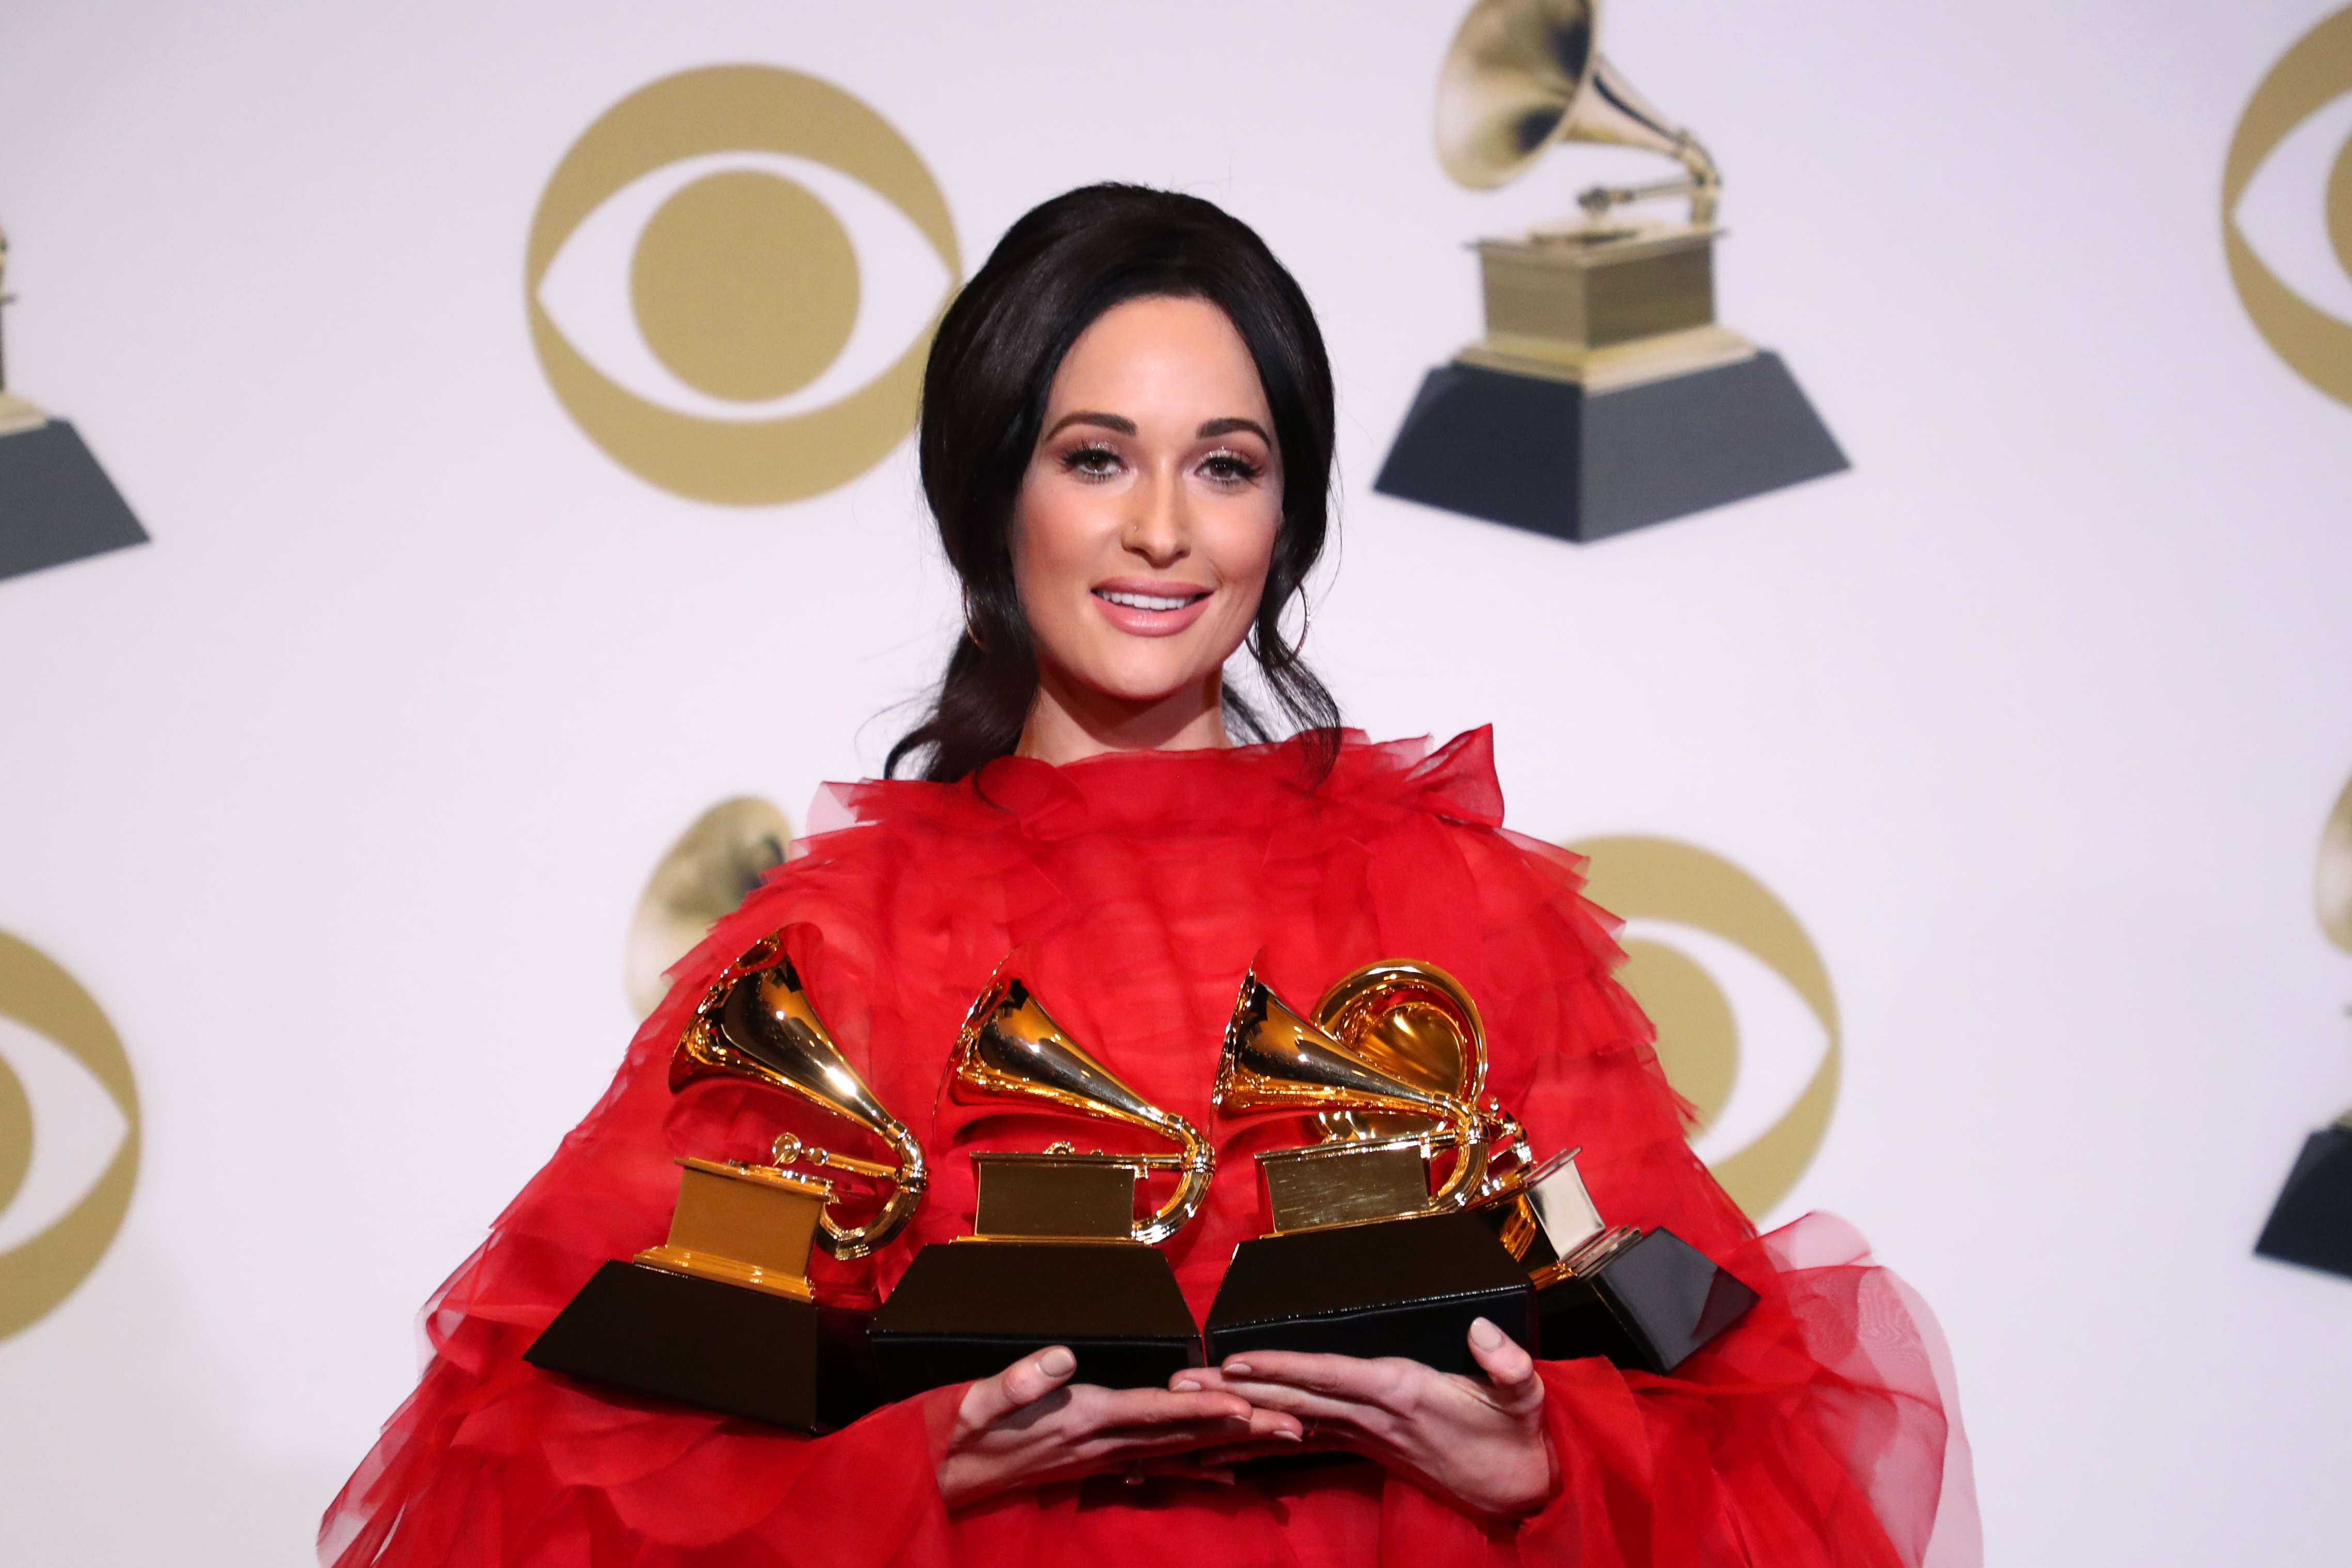 How Kacey Musgraves' Grammy Wins Give Country Radio a Choice